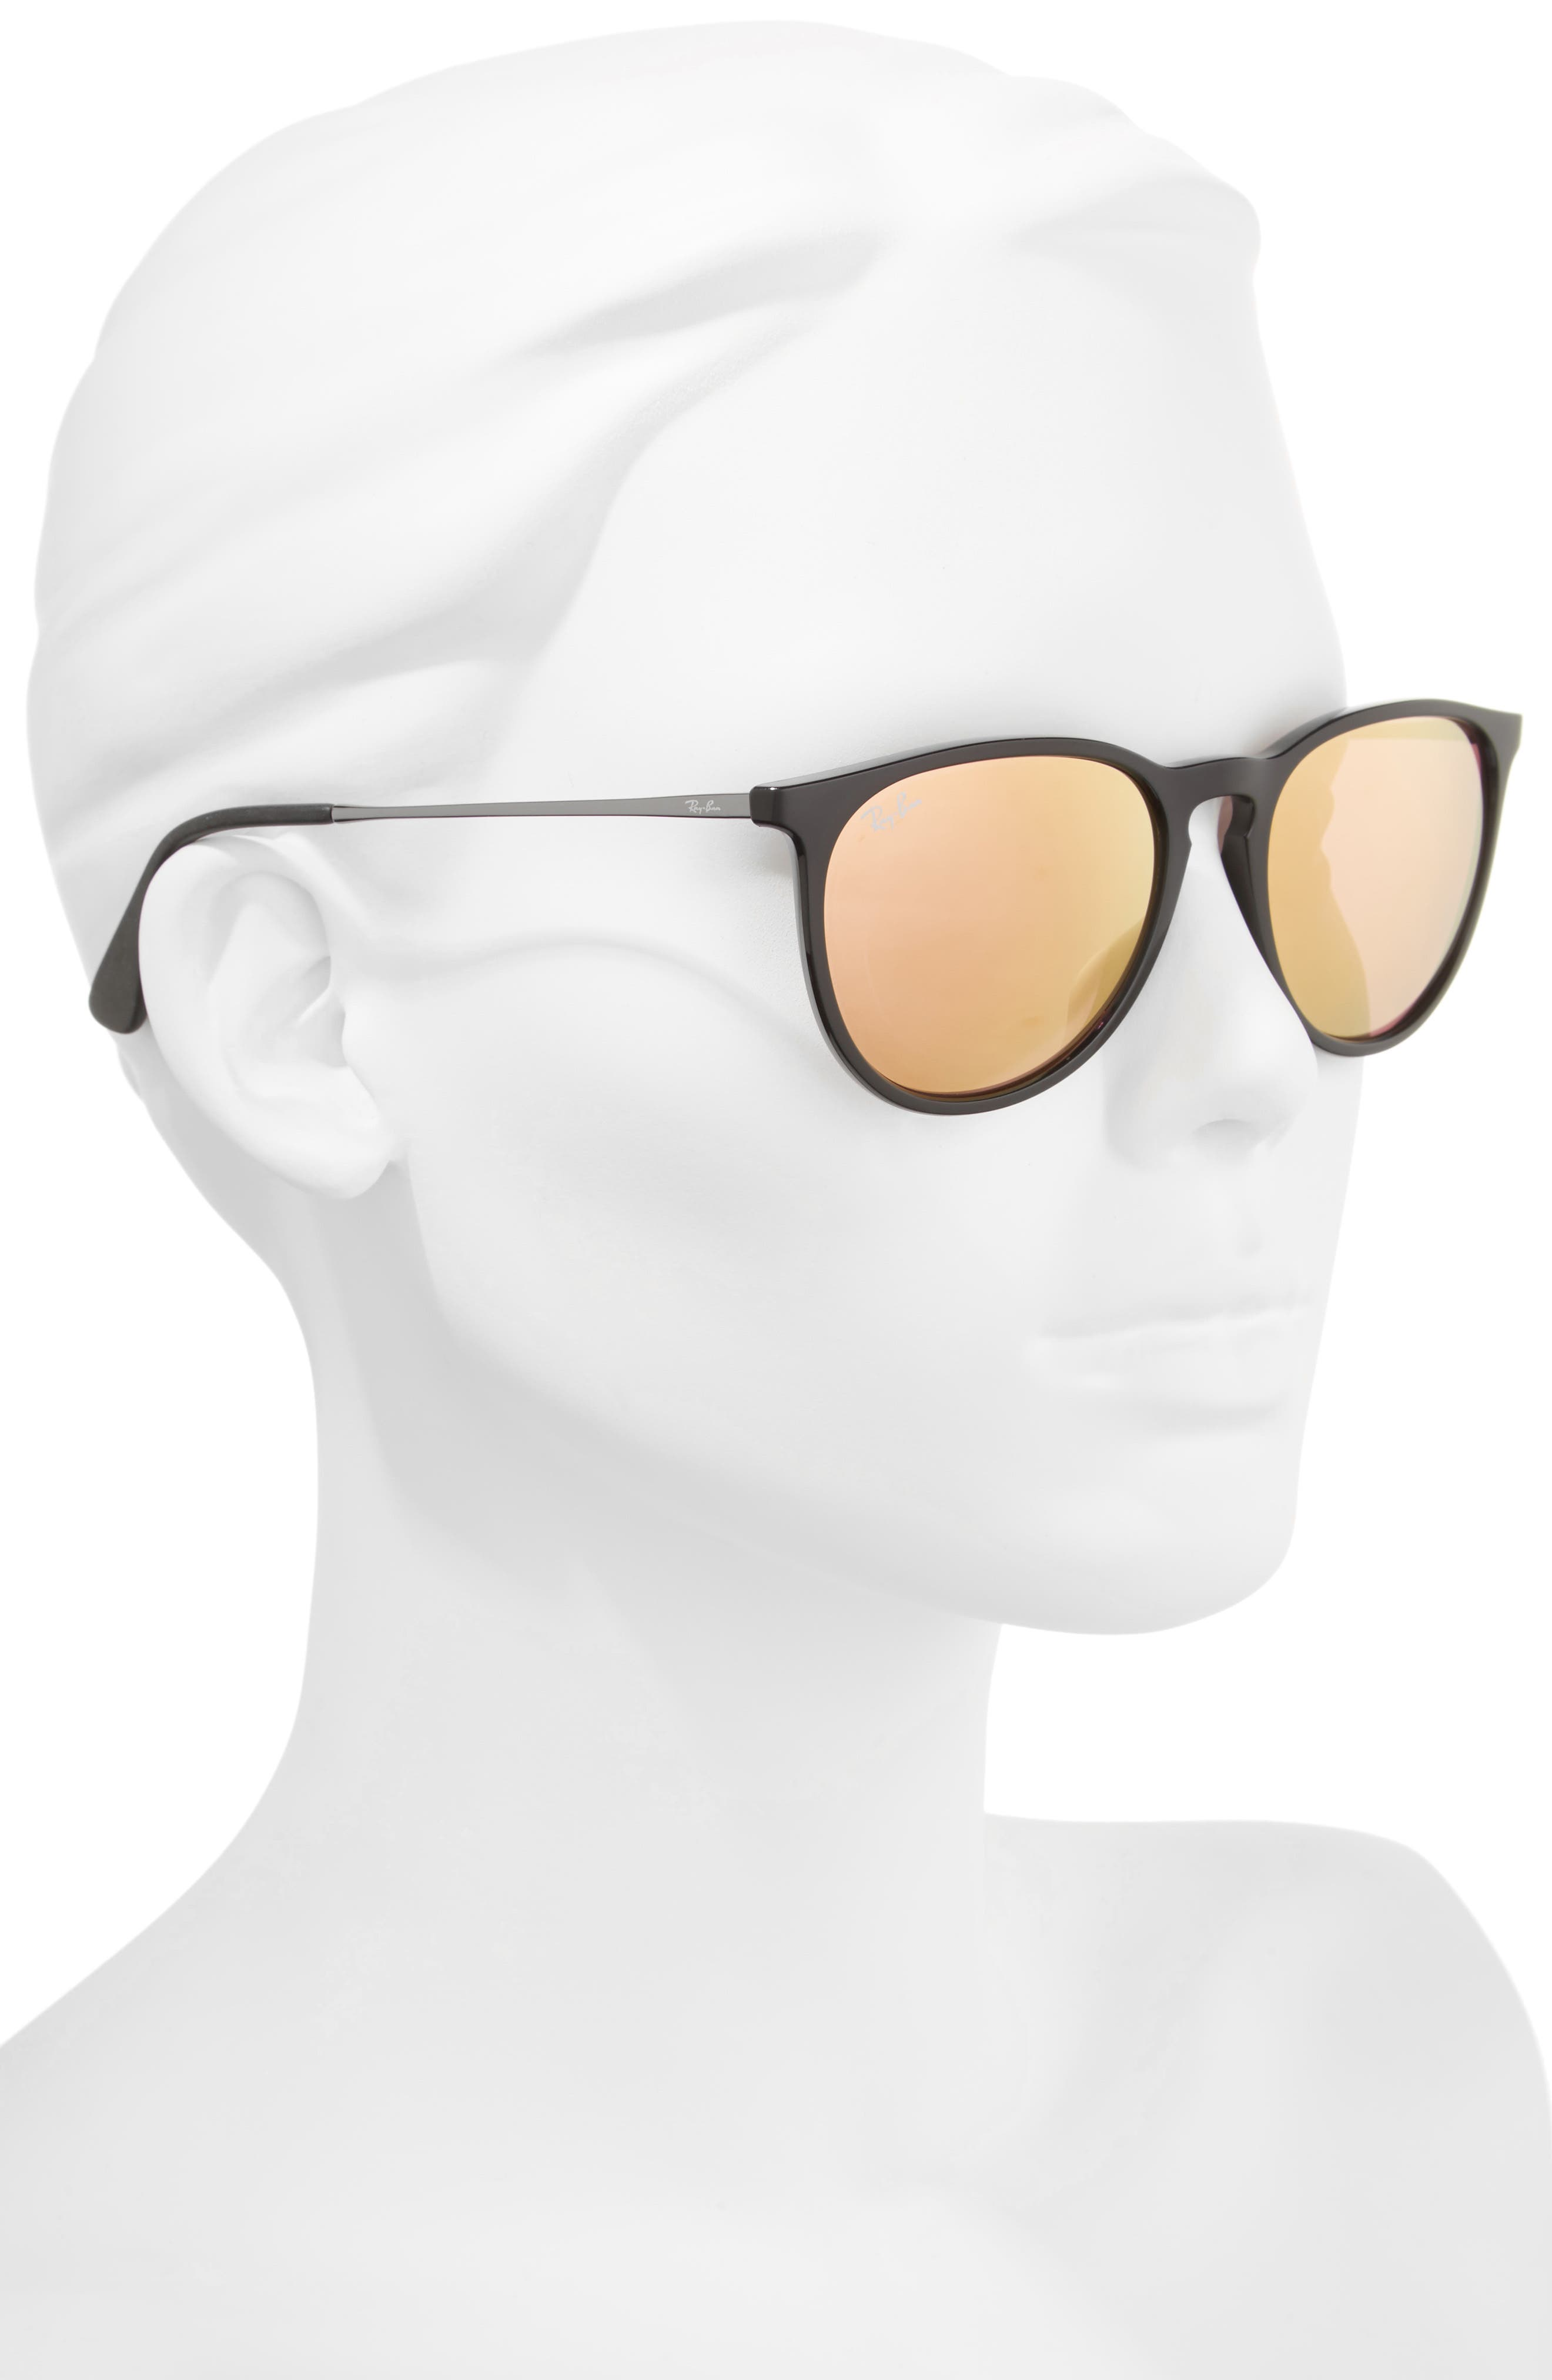 Erika 54mm Mirrored Sunglasses,                             Alternate thumbnail 4, color,